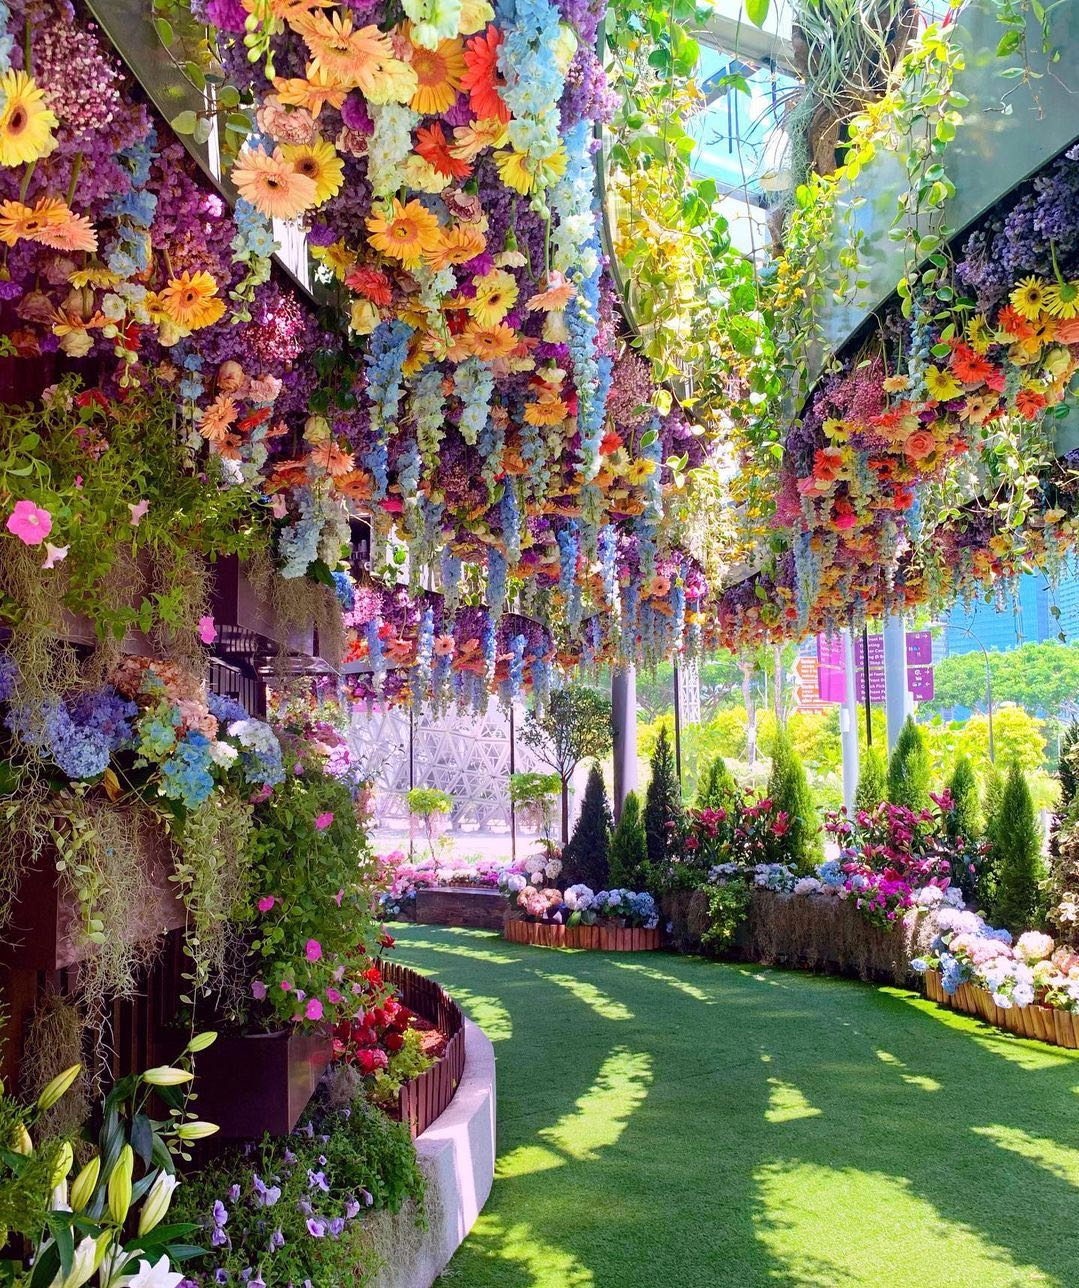 Floral Fantasy: A Floral Artistry Paradise